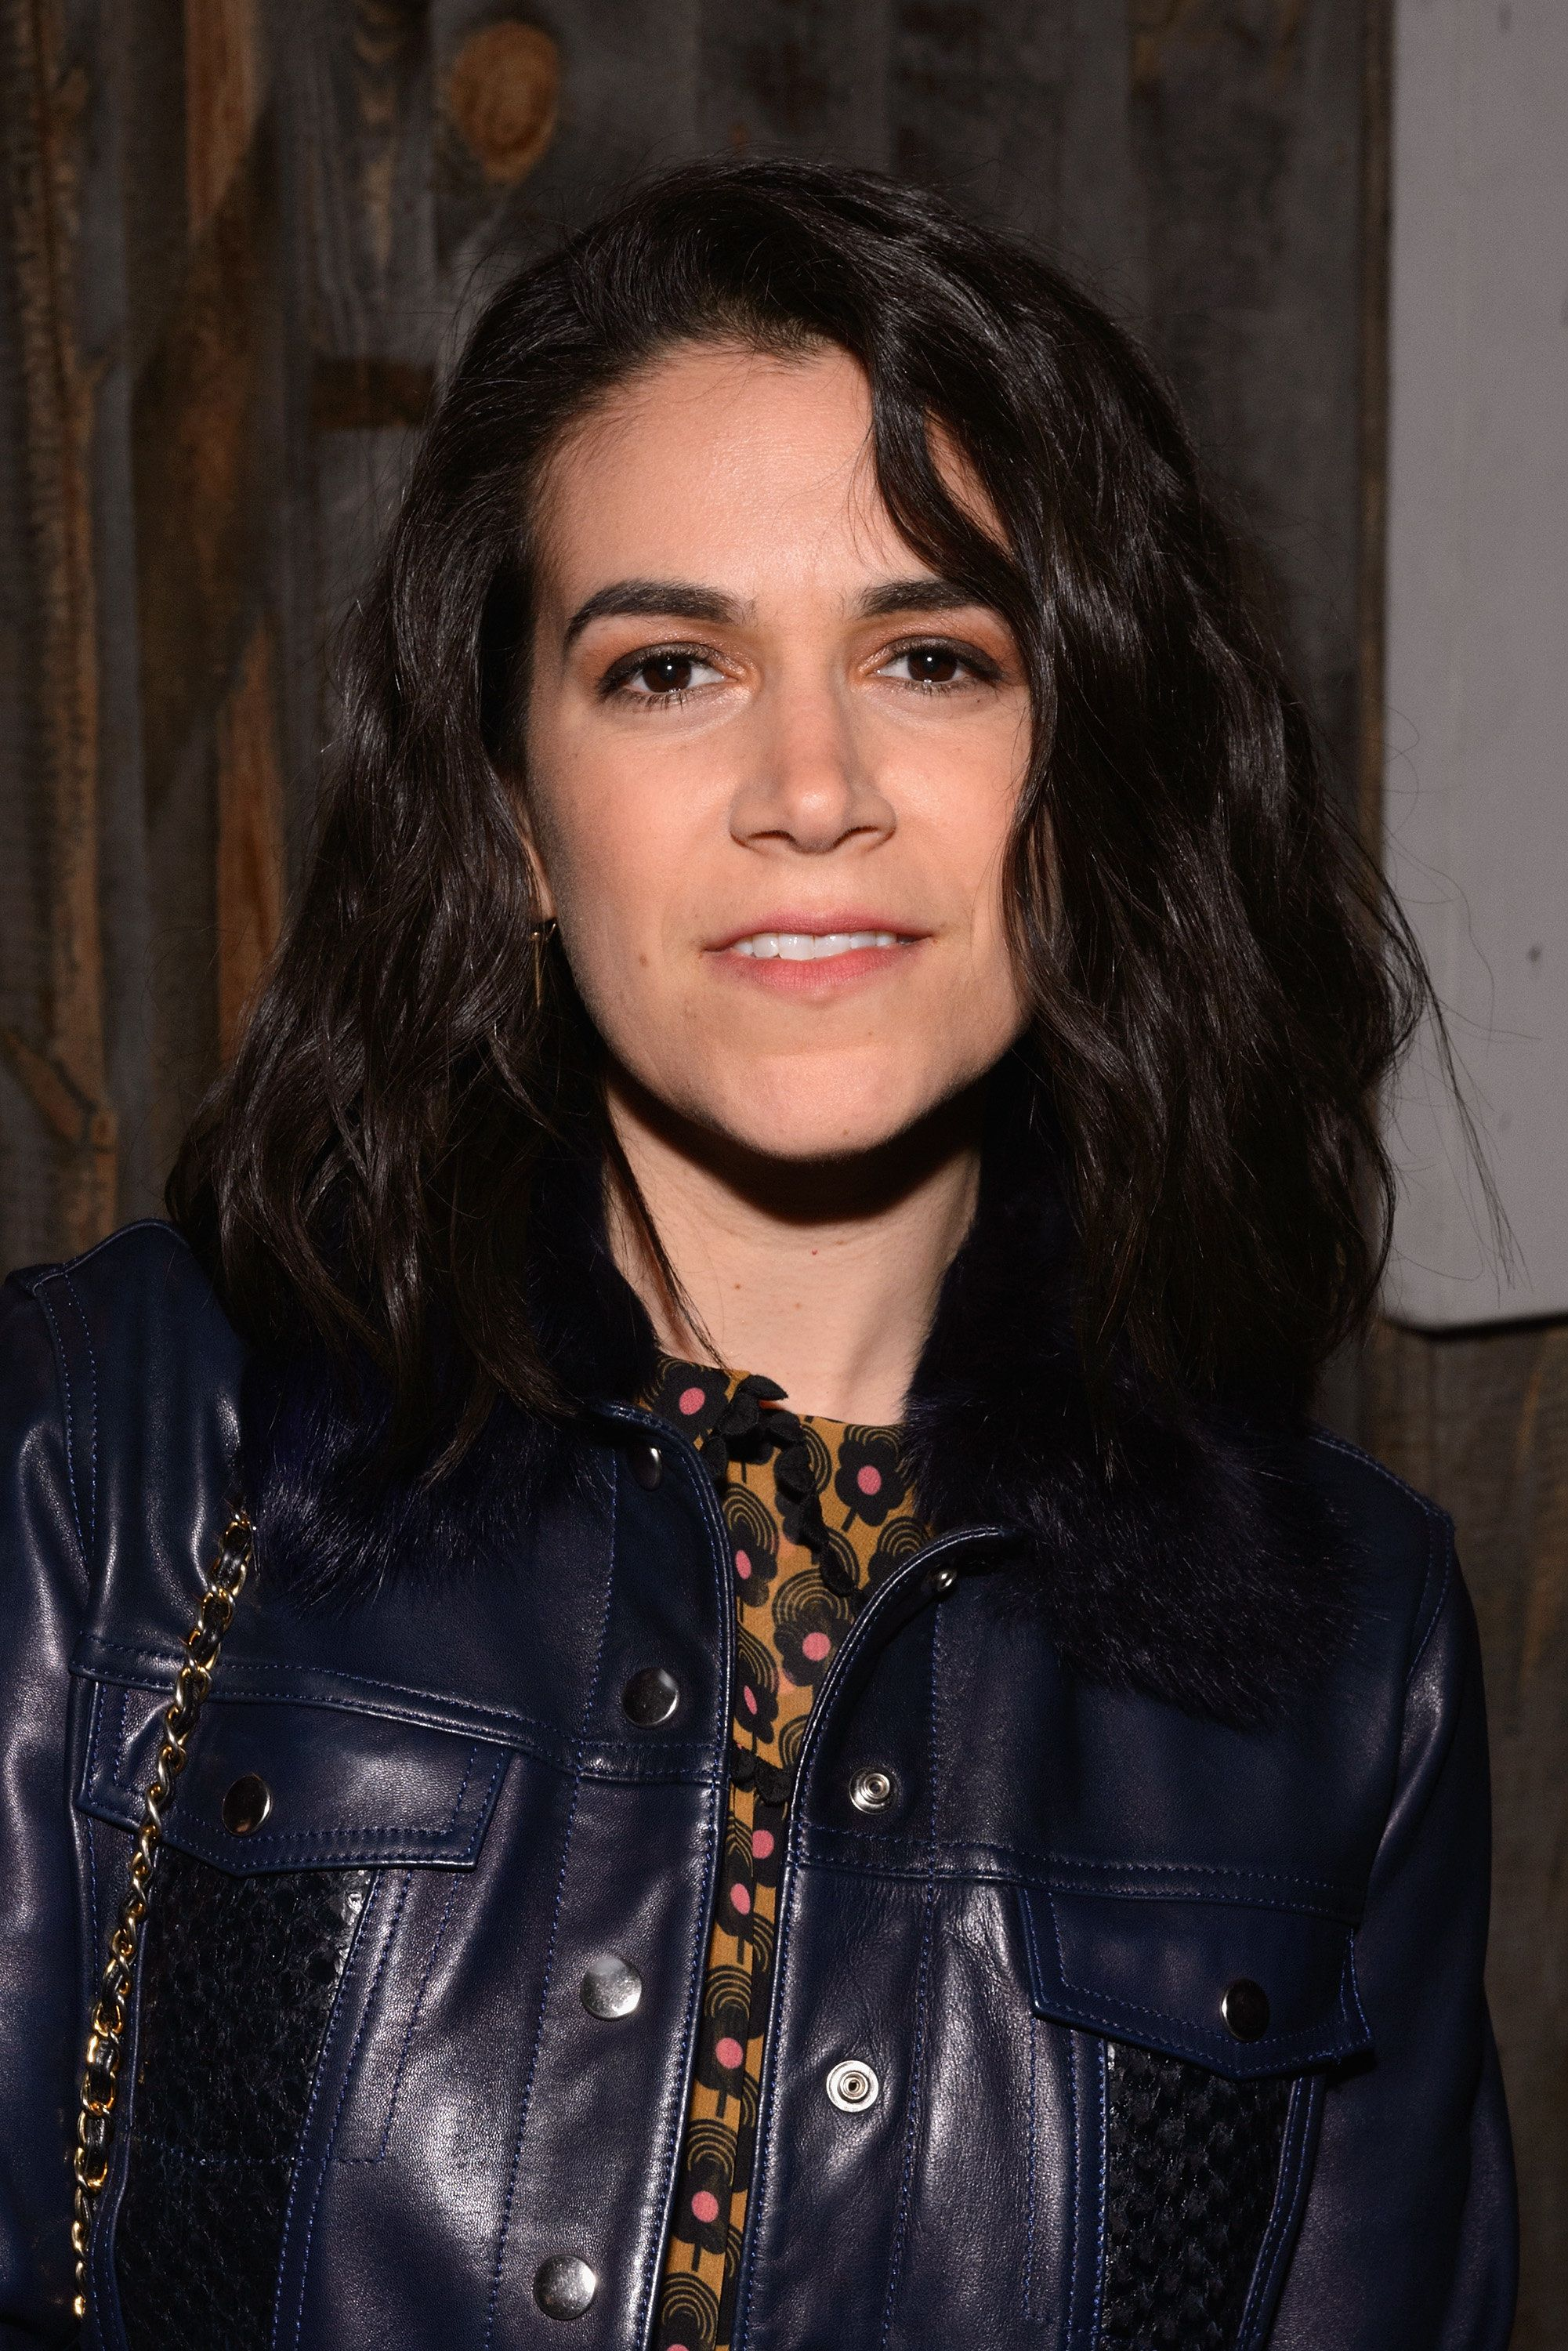 AUSTIN, TX - MARCH 12:  Abbi Jacobson attends a cast party for the premiere of '6 Balloons' during SXSW 2018 on March 12, 2018 in Austin, Texas.  (Photo by Daniel Boczarski/Getty Images for Netflix)